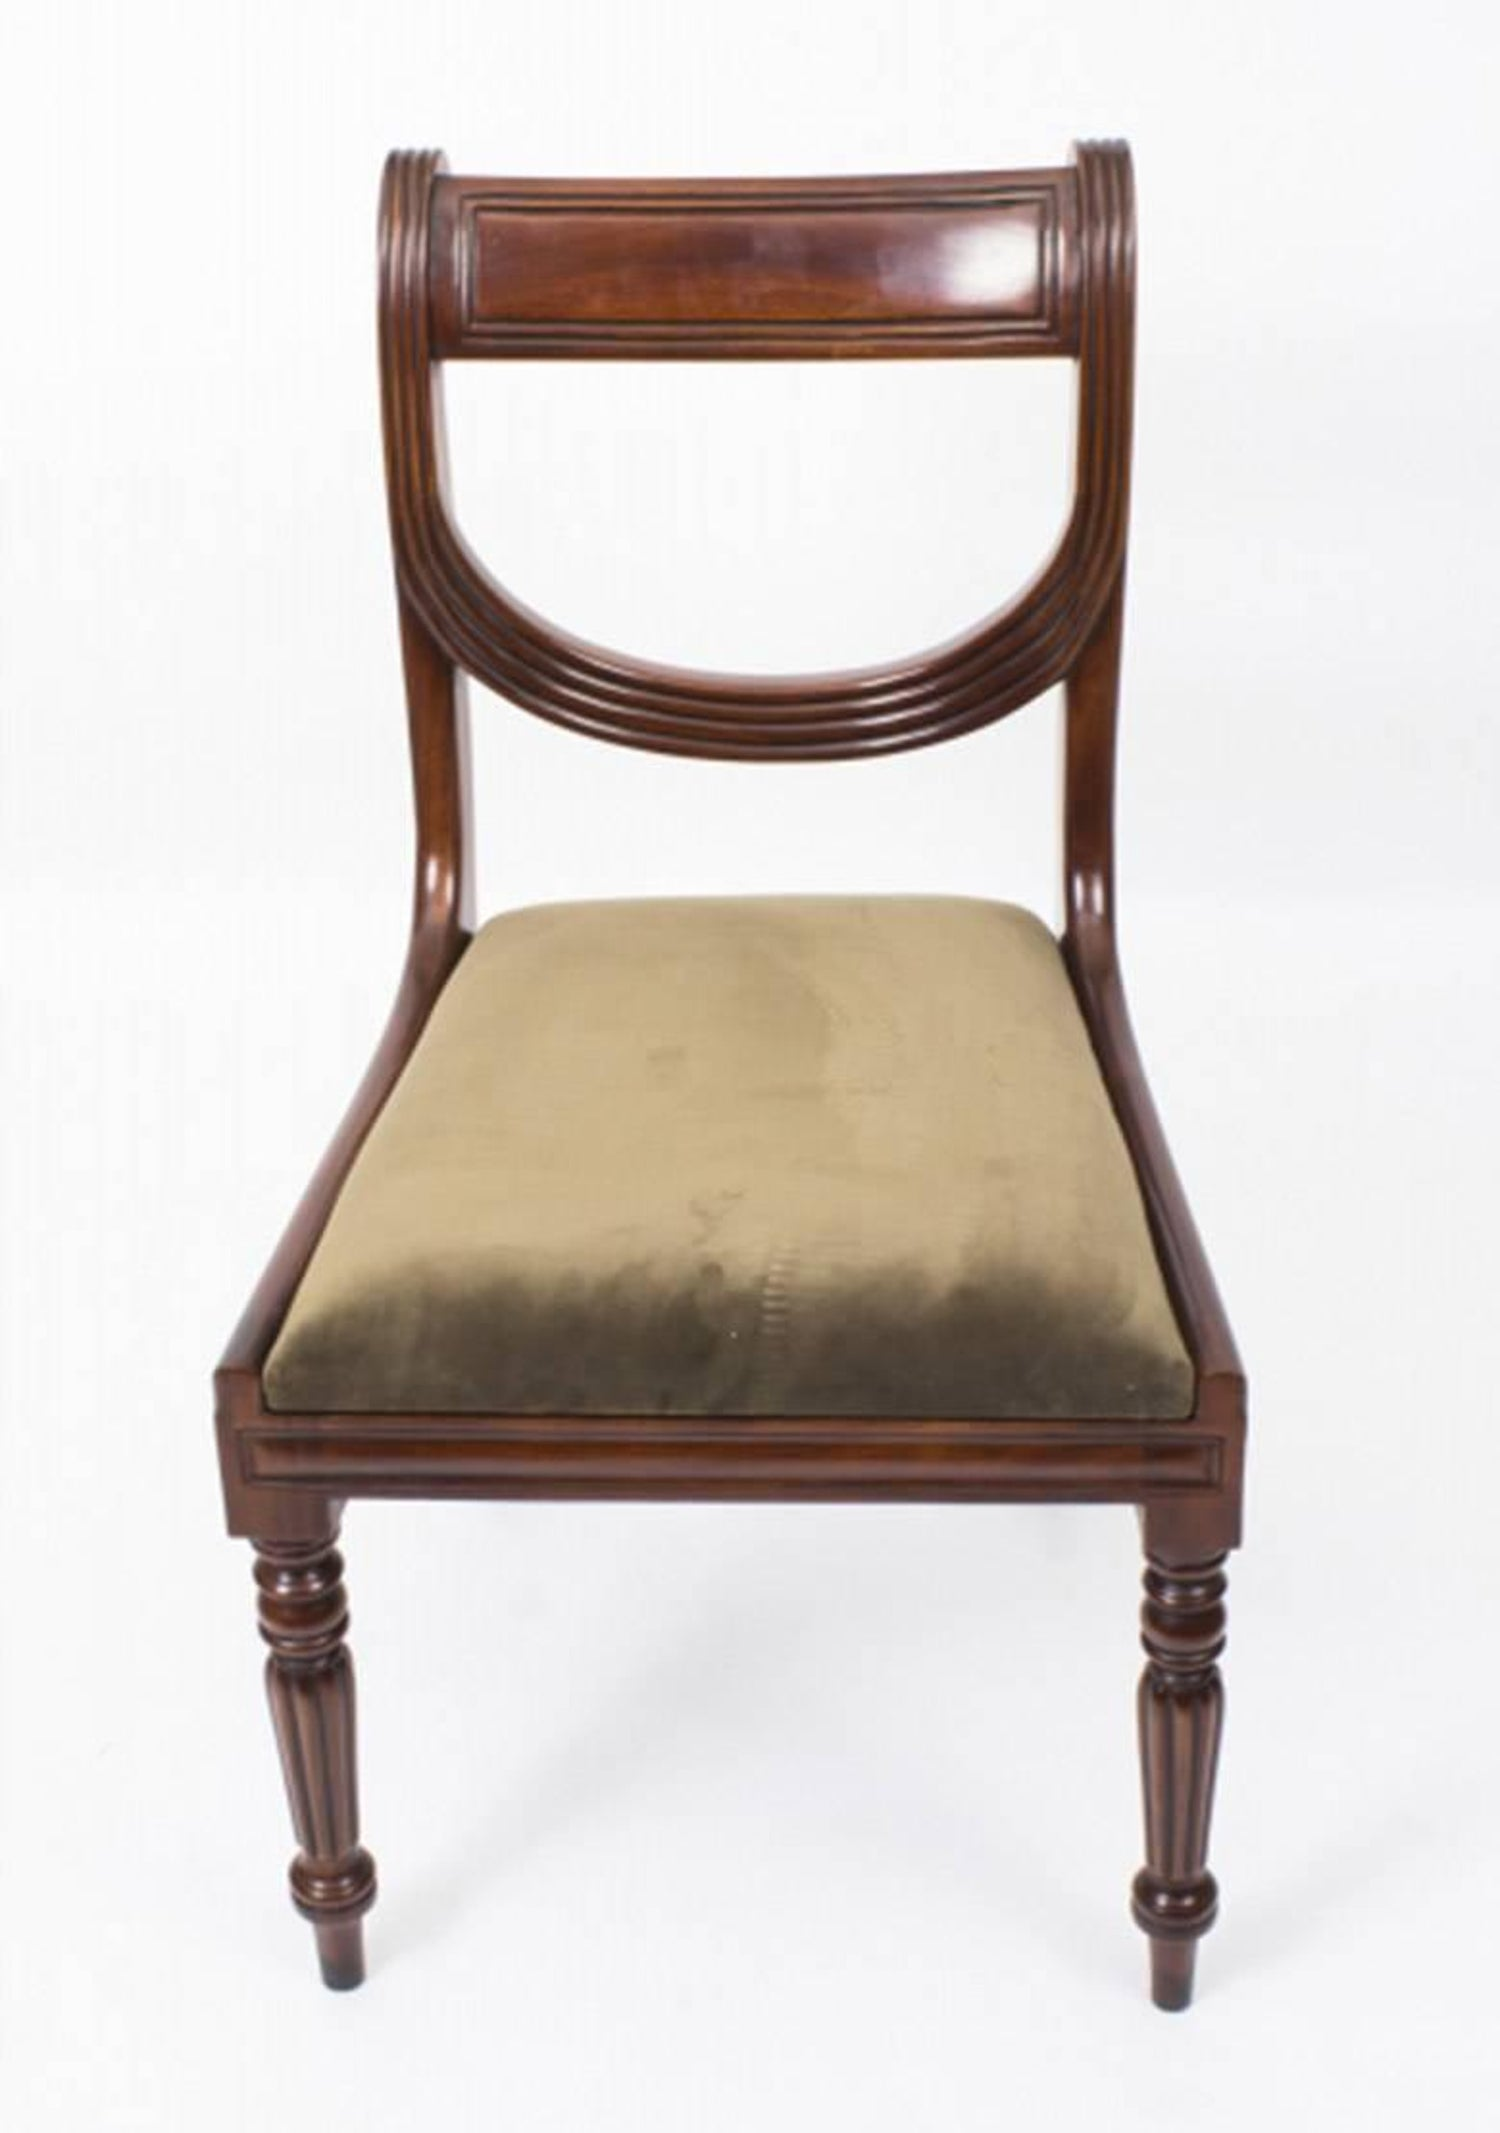 Antique Victorian Mahogany Twin Base Dining Table 19th Century and 14 Chairs  at 1stdibs - Antique Victorian Mahogany Twin Base Dining Table 19th Century And